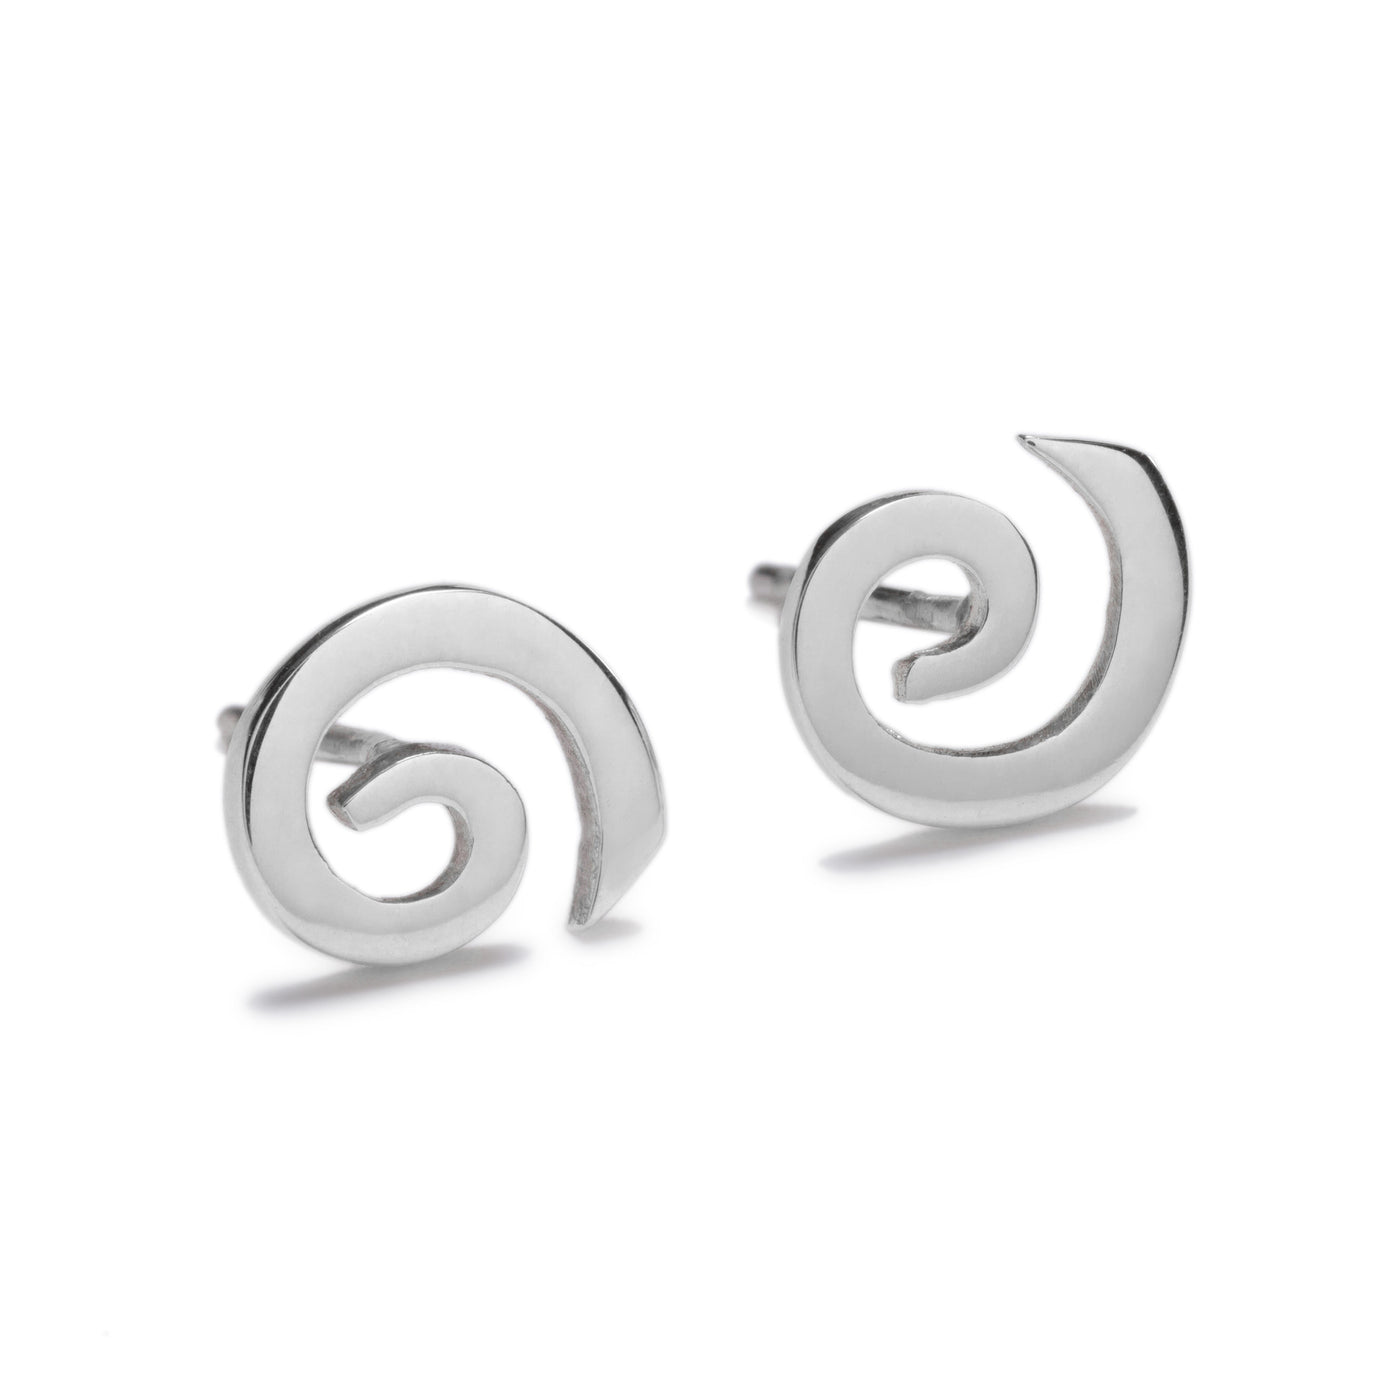 Solstice Silver Stud Earrings